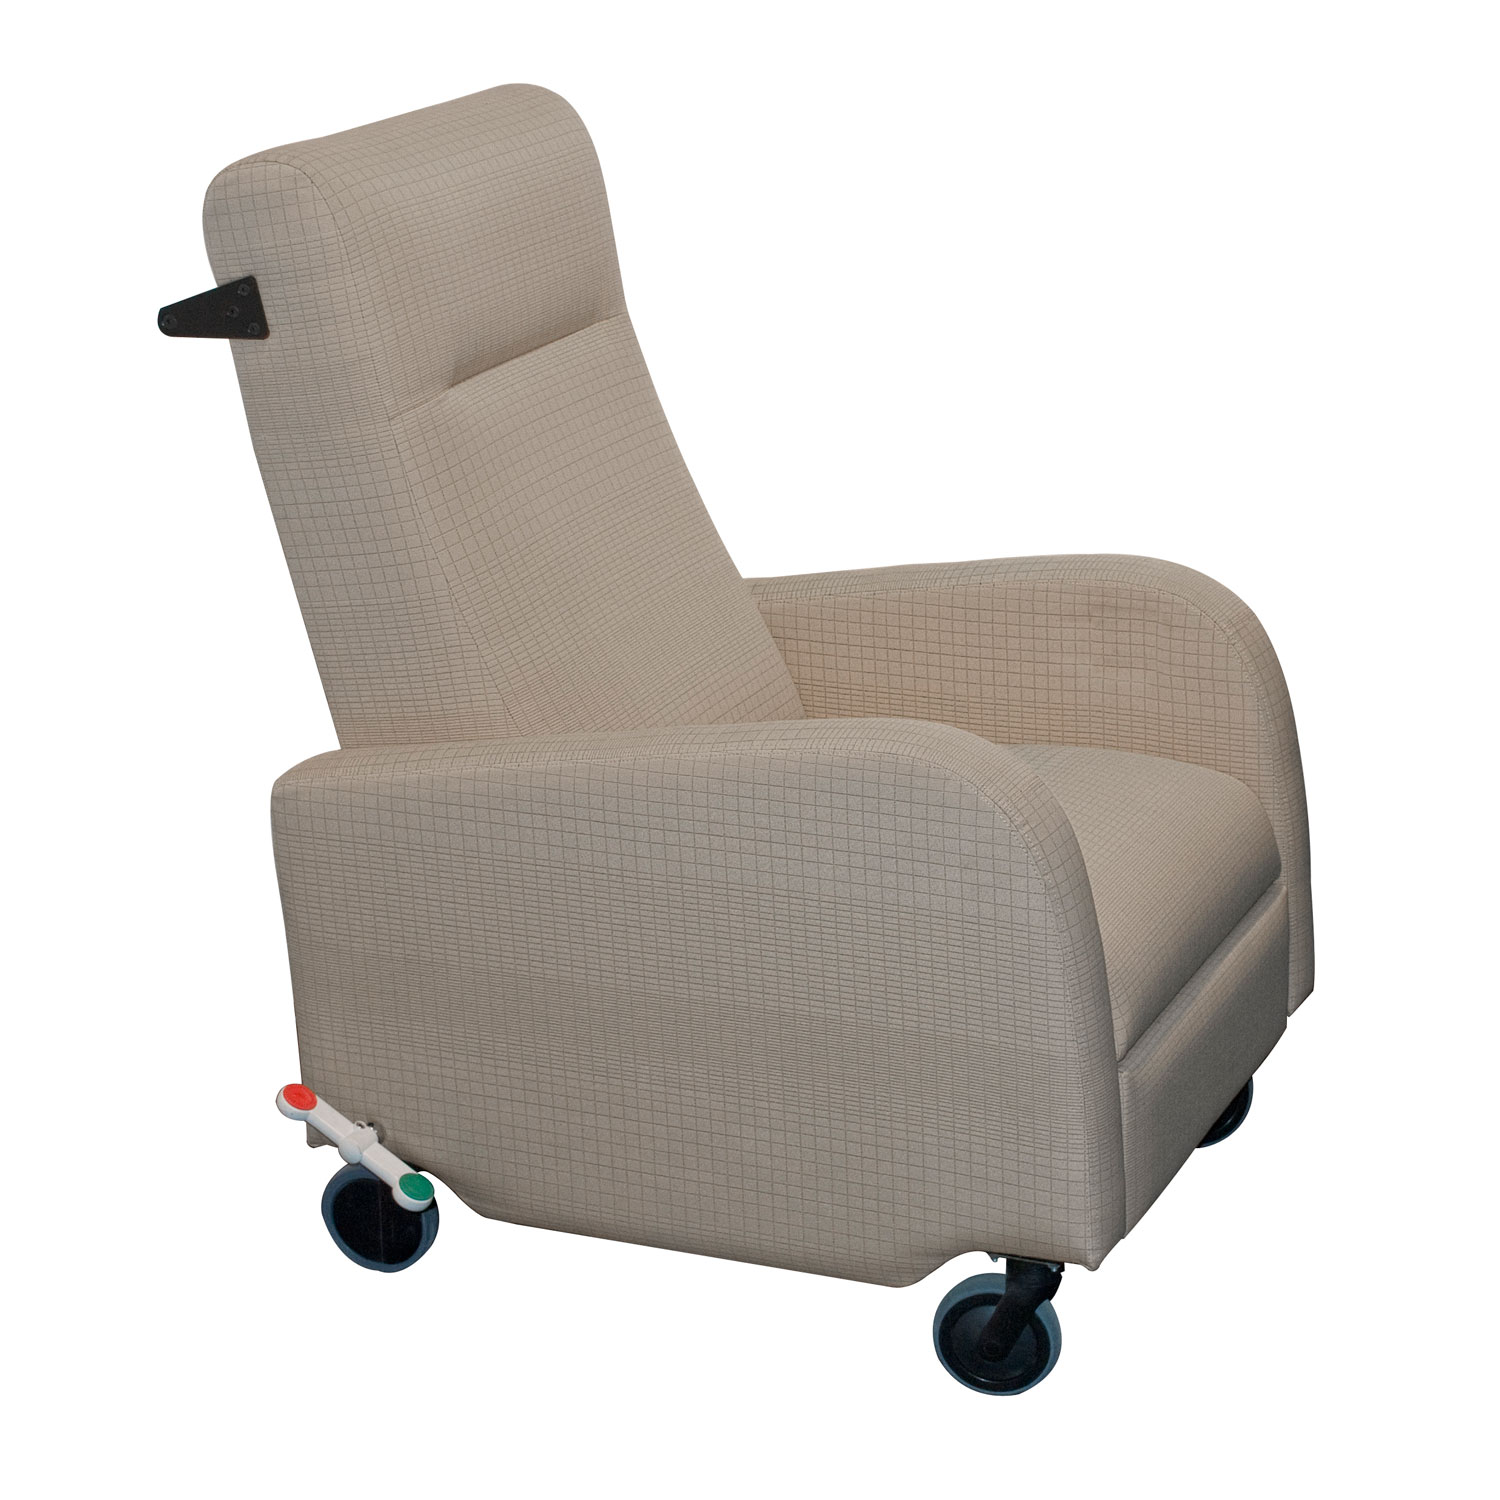 Haley Healthcare Recliners From HPFi   High Point Furniture Industries